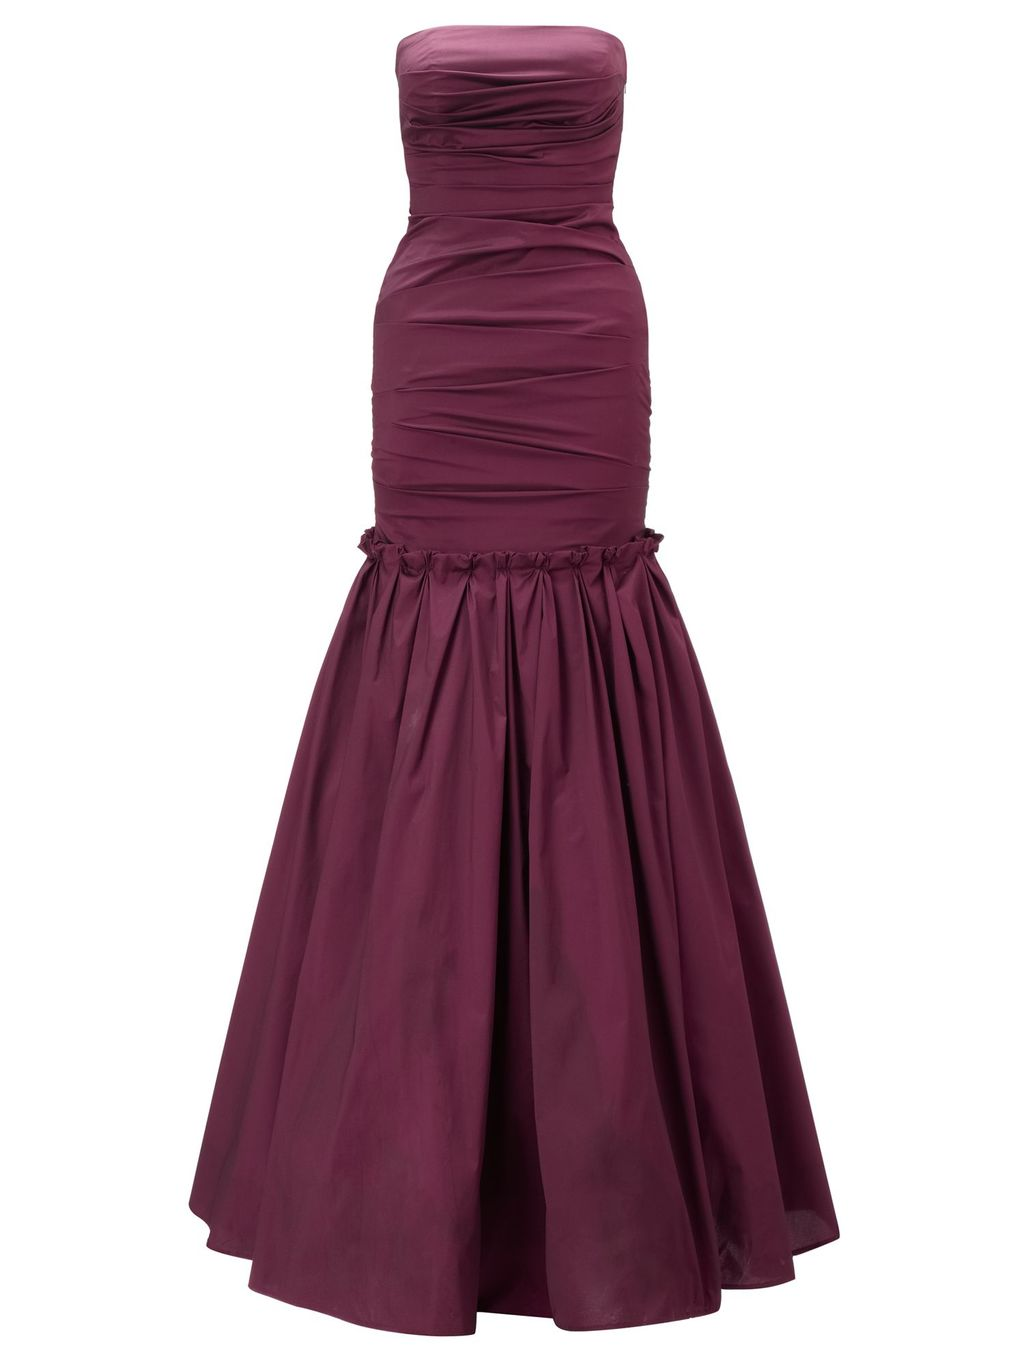 Burgundy Marilea Strapless Long Gown, Burgundy - style: ballgown; neckline: strapless (straight/sweetheart); fit: tailored/fitted; pattern: plain; sleeve style: strapless; waist detail: flattering waist detail; bust detail: subtle bust detail; predominant colour: burgundy; occasions: evening, occasion; length: floor length; fibres: polyester/polyamide - stretch; hip detail: adds bulk at the hips; sleeve length: sleeveless; texture group: structured shiny - satin/tafetta/silk etc.; pattern type: fabric; season: a/w 2014; wardrobe: event